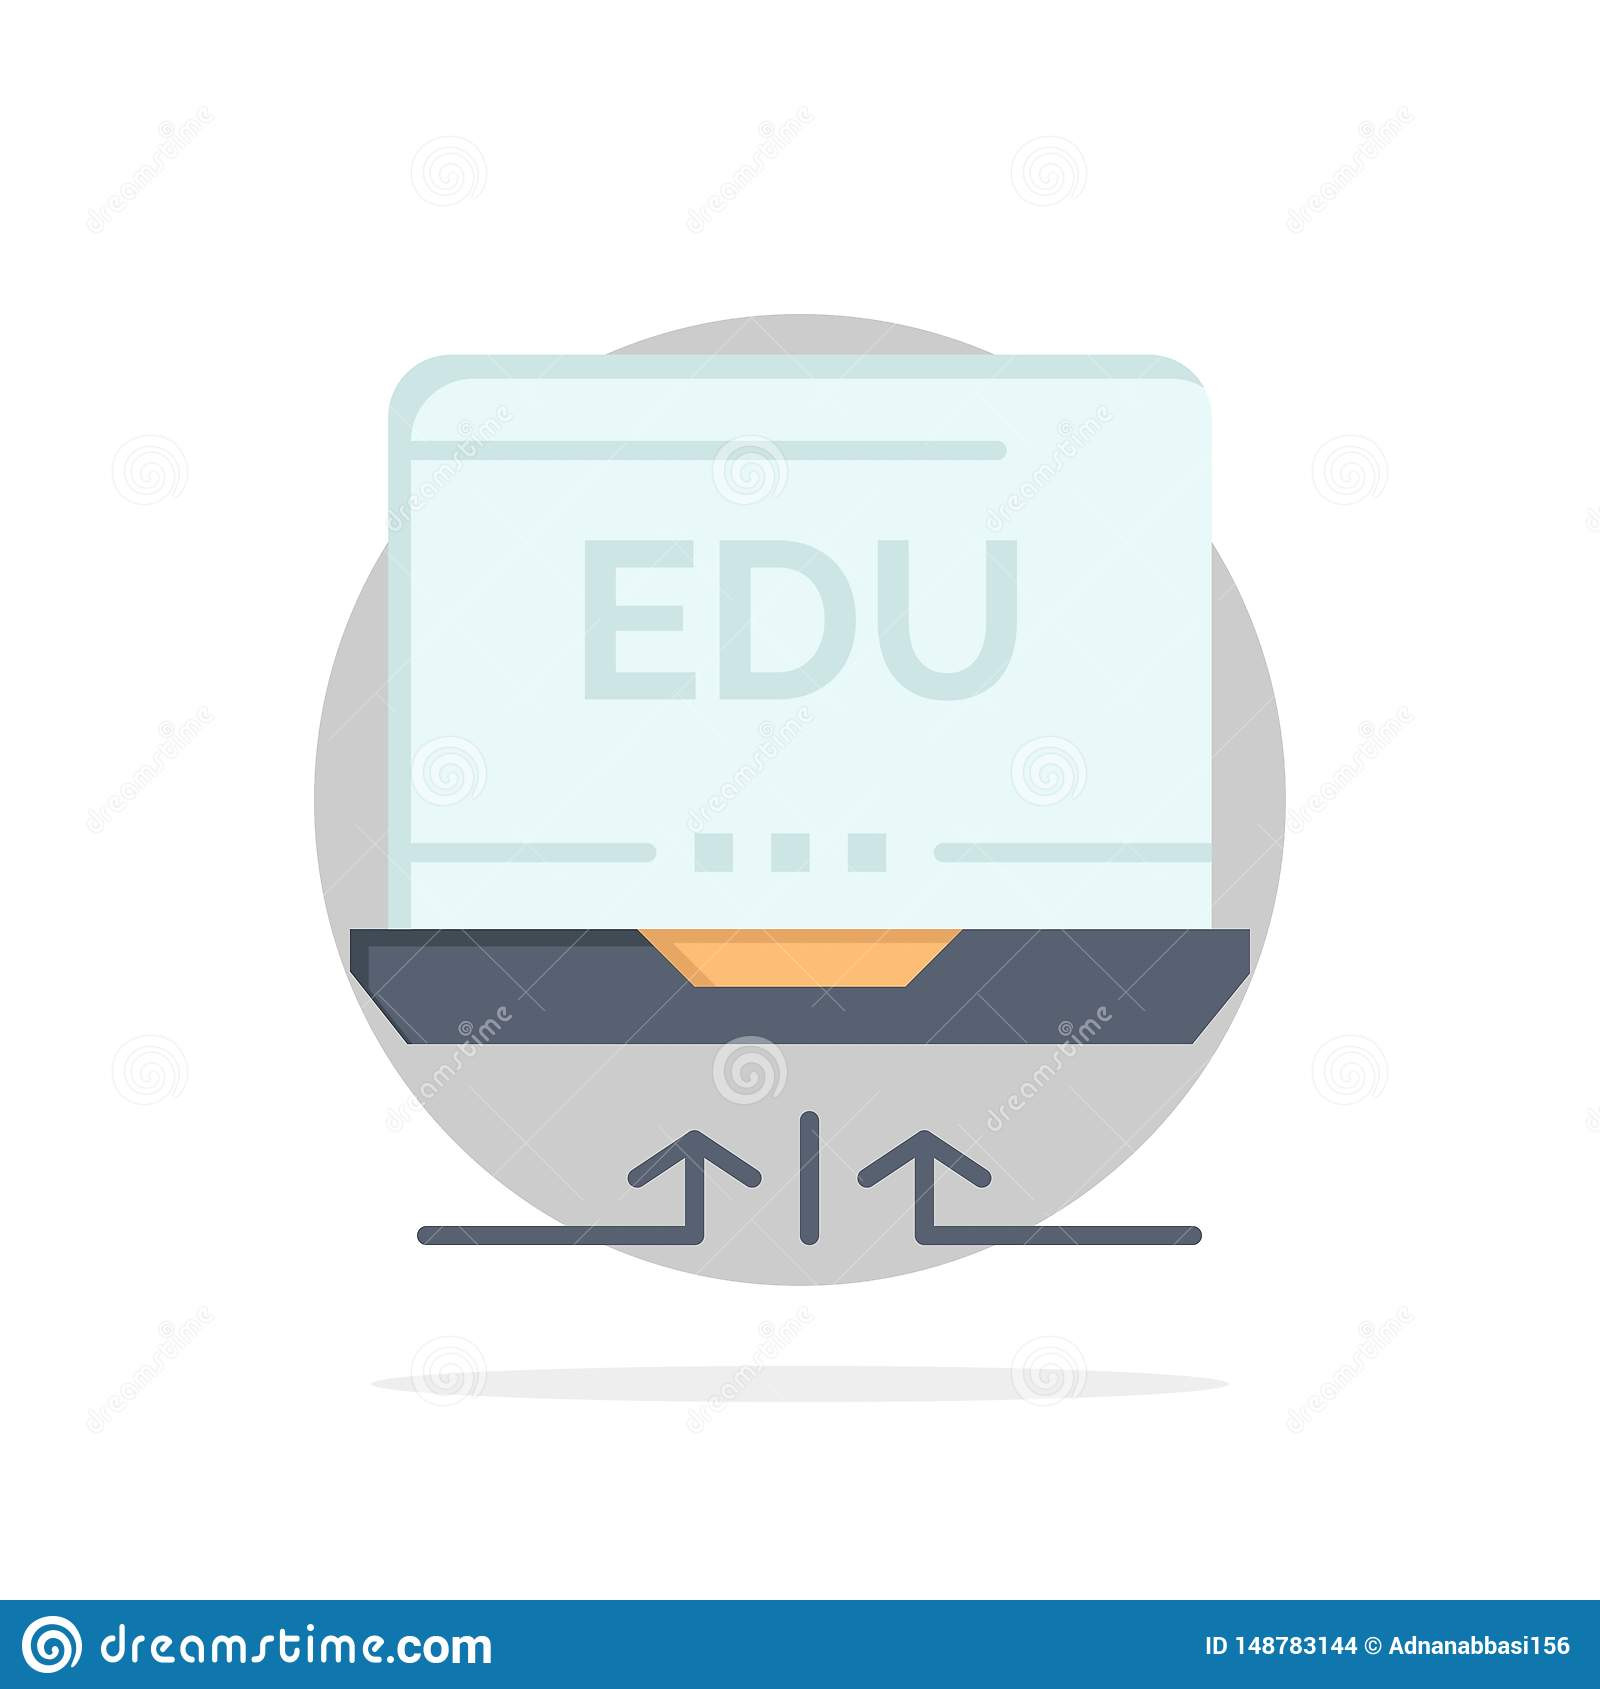 Laptop, Hardware, Arrow, Education Abstract Circle Background Flat color Icon